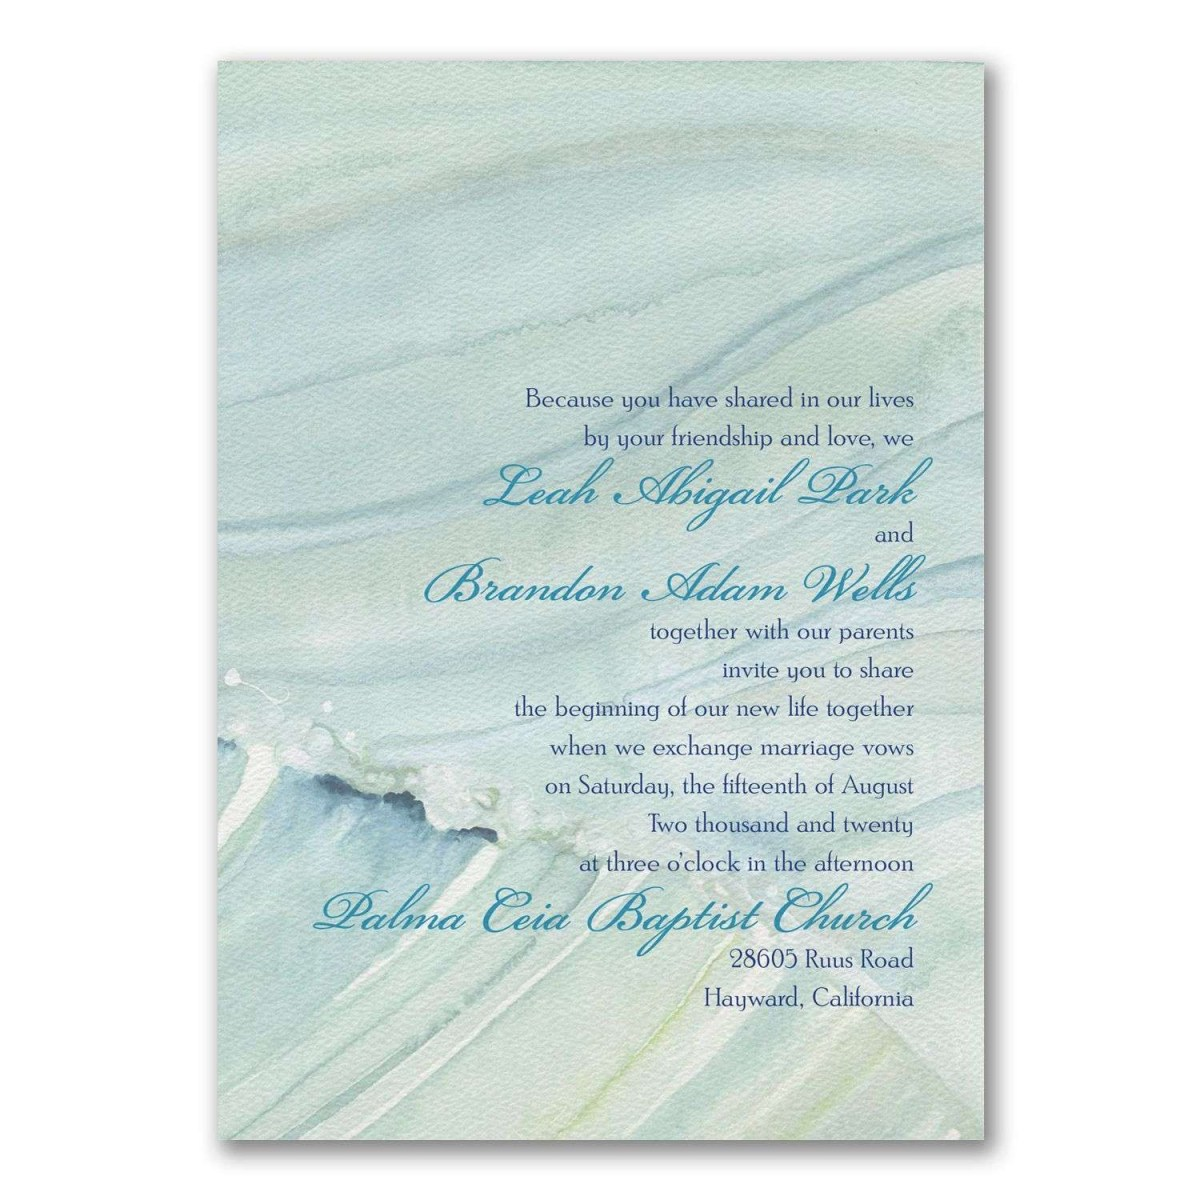 Carlson Wedding Invitations Carlson Craft Wedding Invitations F Wedding Invitations And Save The